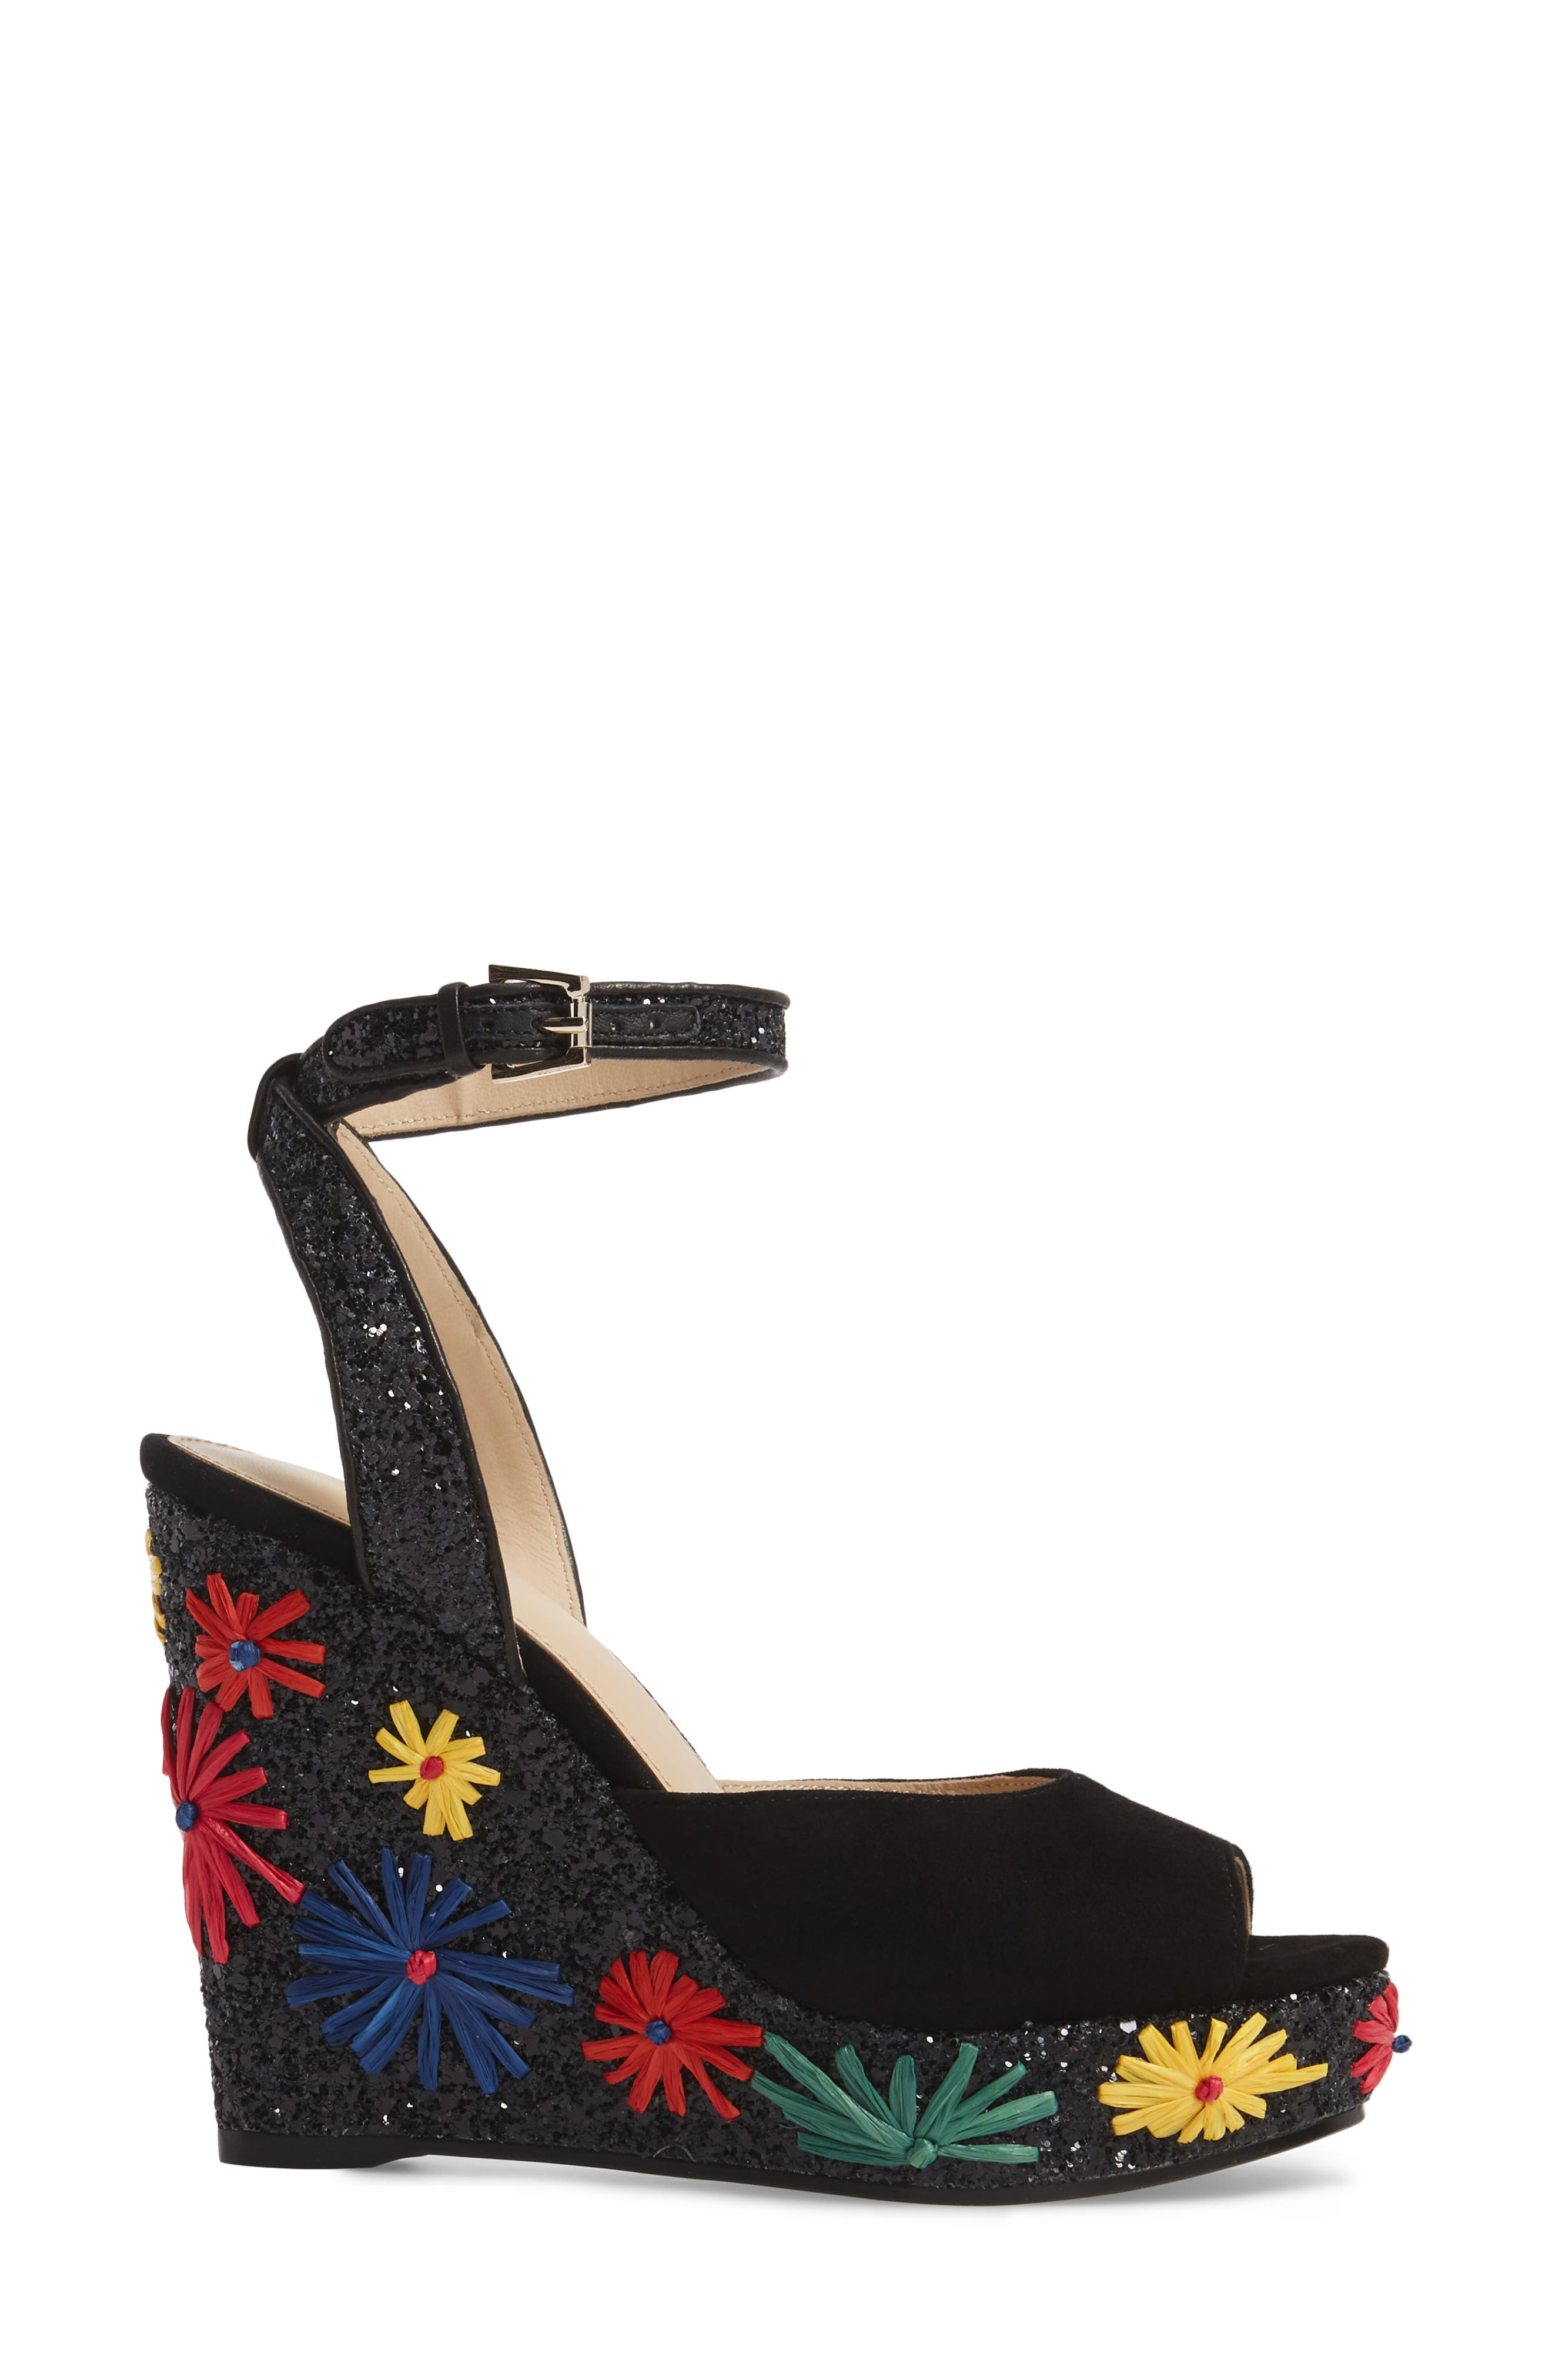 Jessie Wedge Sandal,                             Alternate thumbnail 3, color,                             BRIGHT FLORAL LEATHER